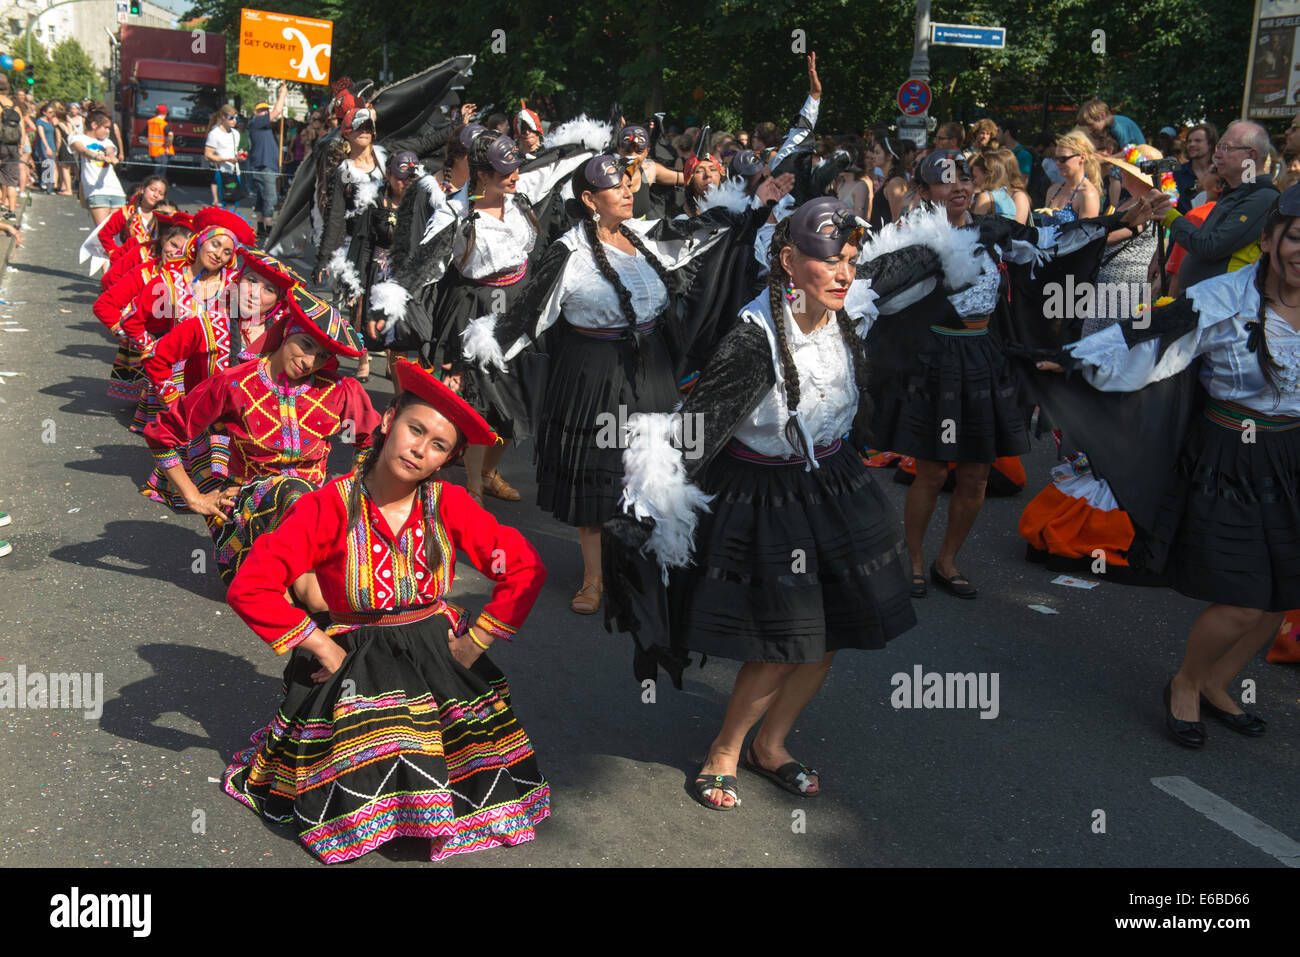 Participants at the Karneval der Kulturen (Carnival of Cultures), one of the main urban festivals in Berlin - Stock Image